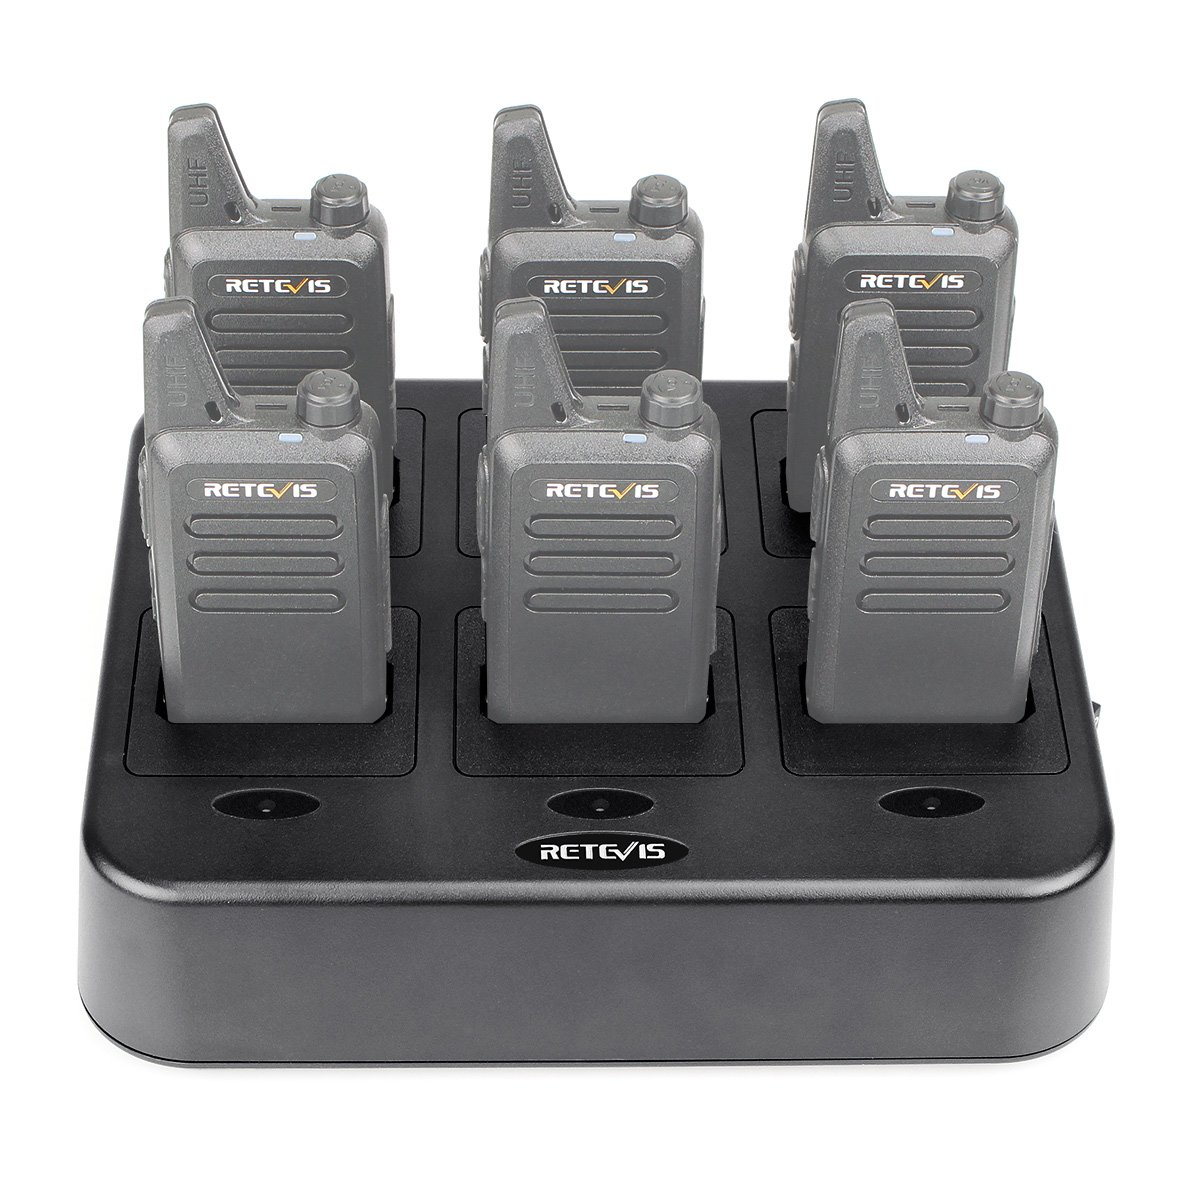 Retevis RT22 Six-Way Charger Multi Unit Charger for Retevis RT22 Walkie Talkie and Battery (1 Pack) by Retevis (Image #1)